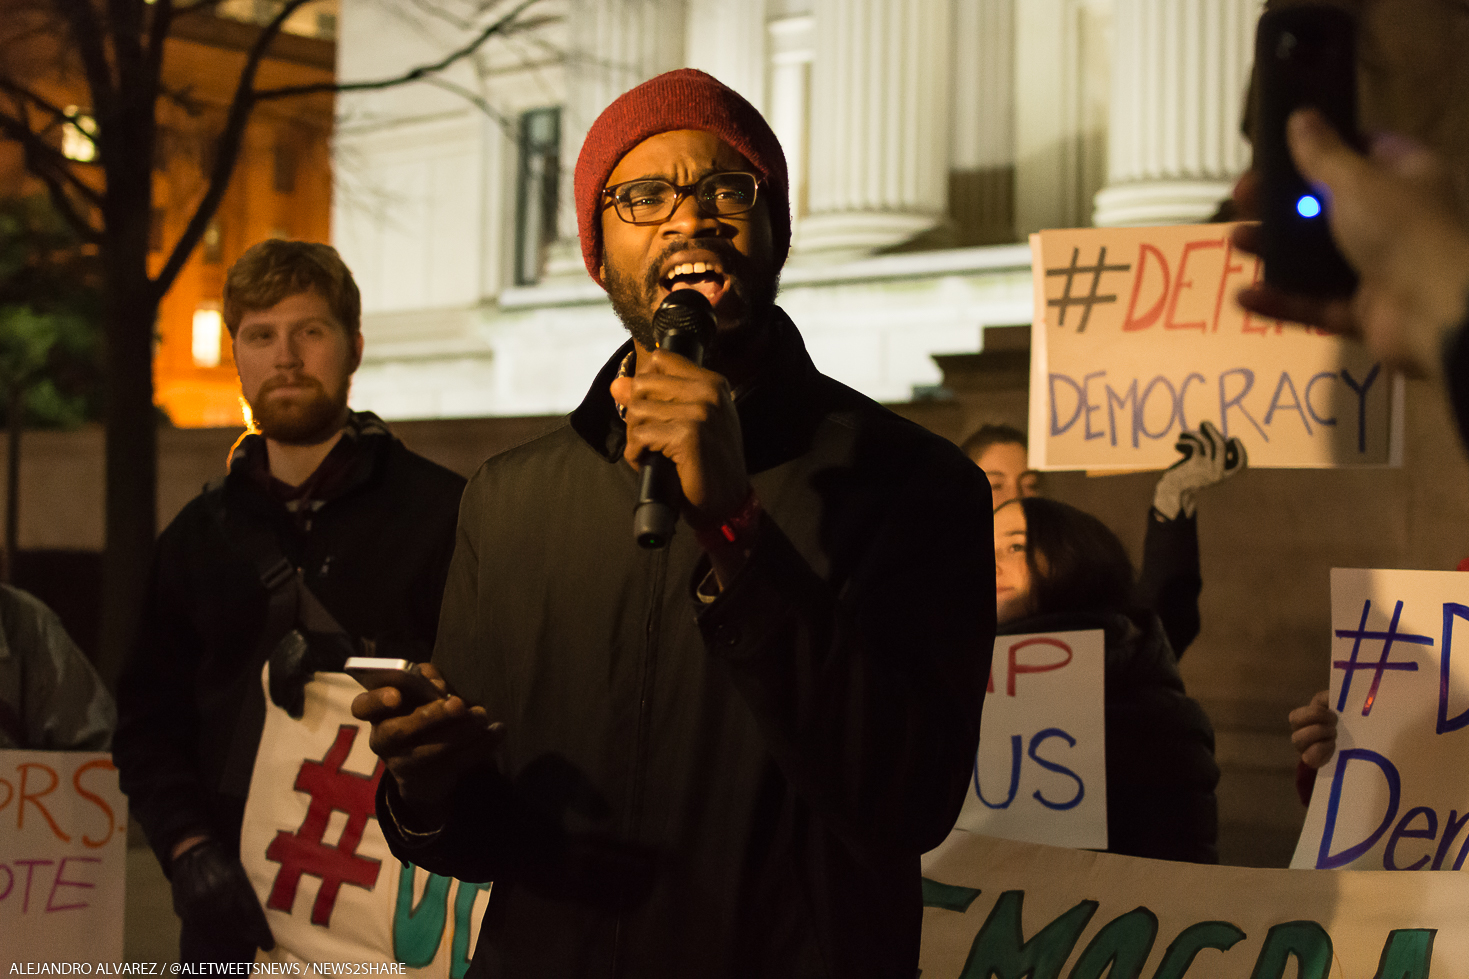 """Eric Jones, with millennial activist group """"All of Us,"""" calling for the Electoral College to delay the vote or dump Trump on Wednesday night."""